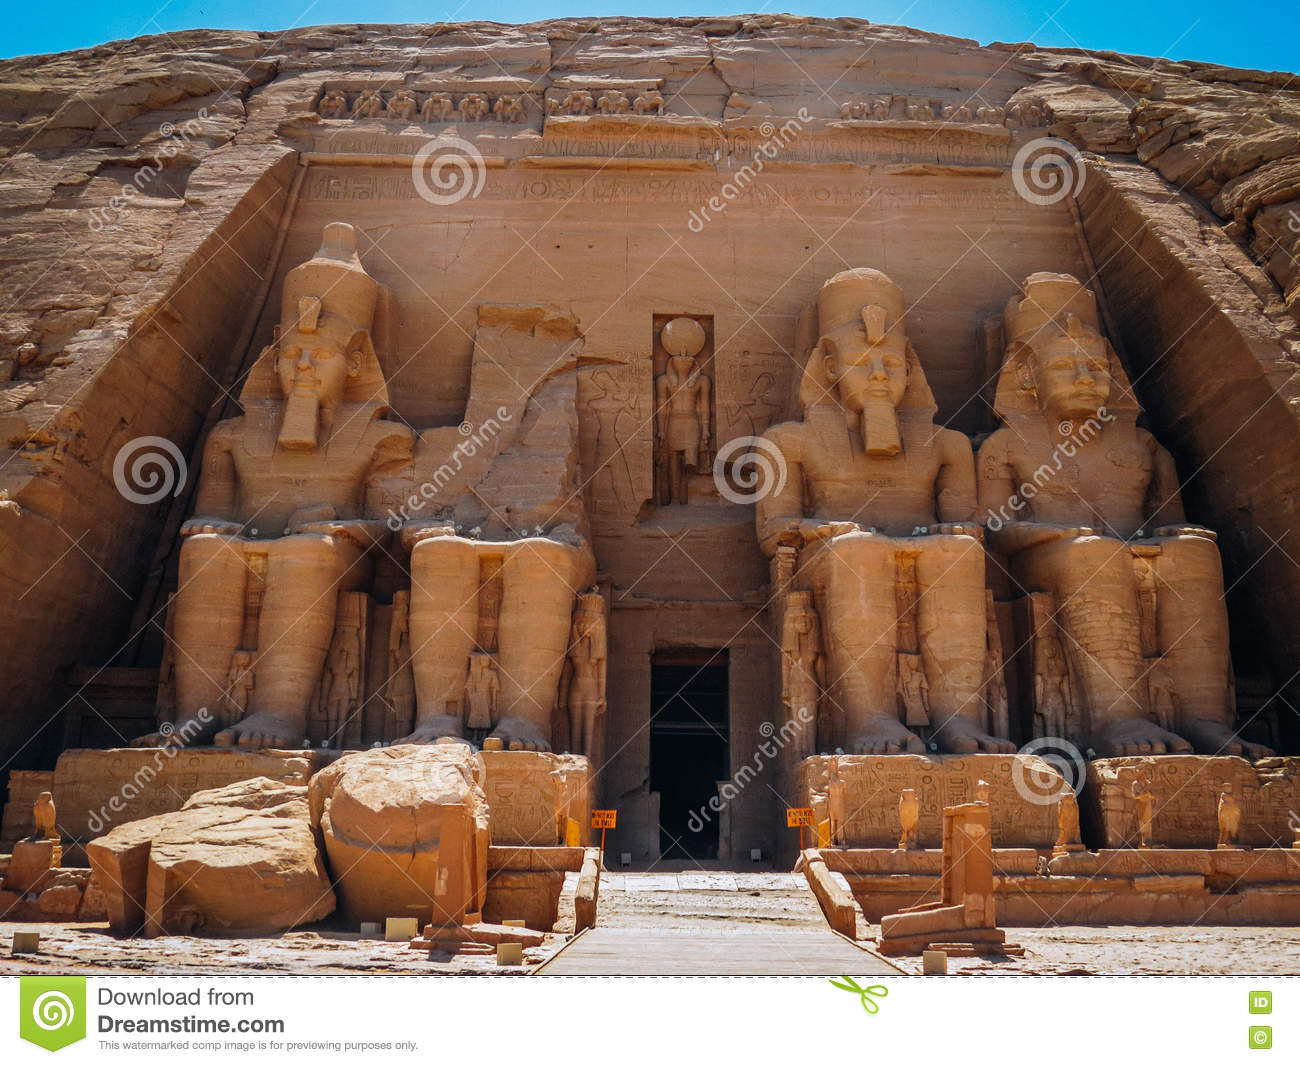 the life and times of ramses the great A massive statue recently unearthed in cairo and thought to depict one of the country's most famous pharaohs may be of another ancient egyptian ruler, the country's antiquities minister said thursday.